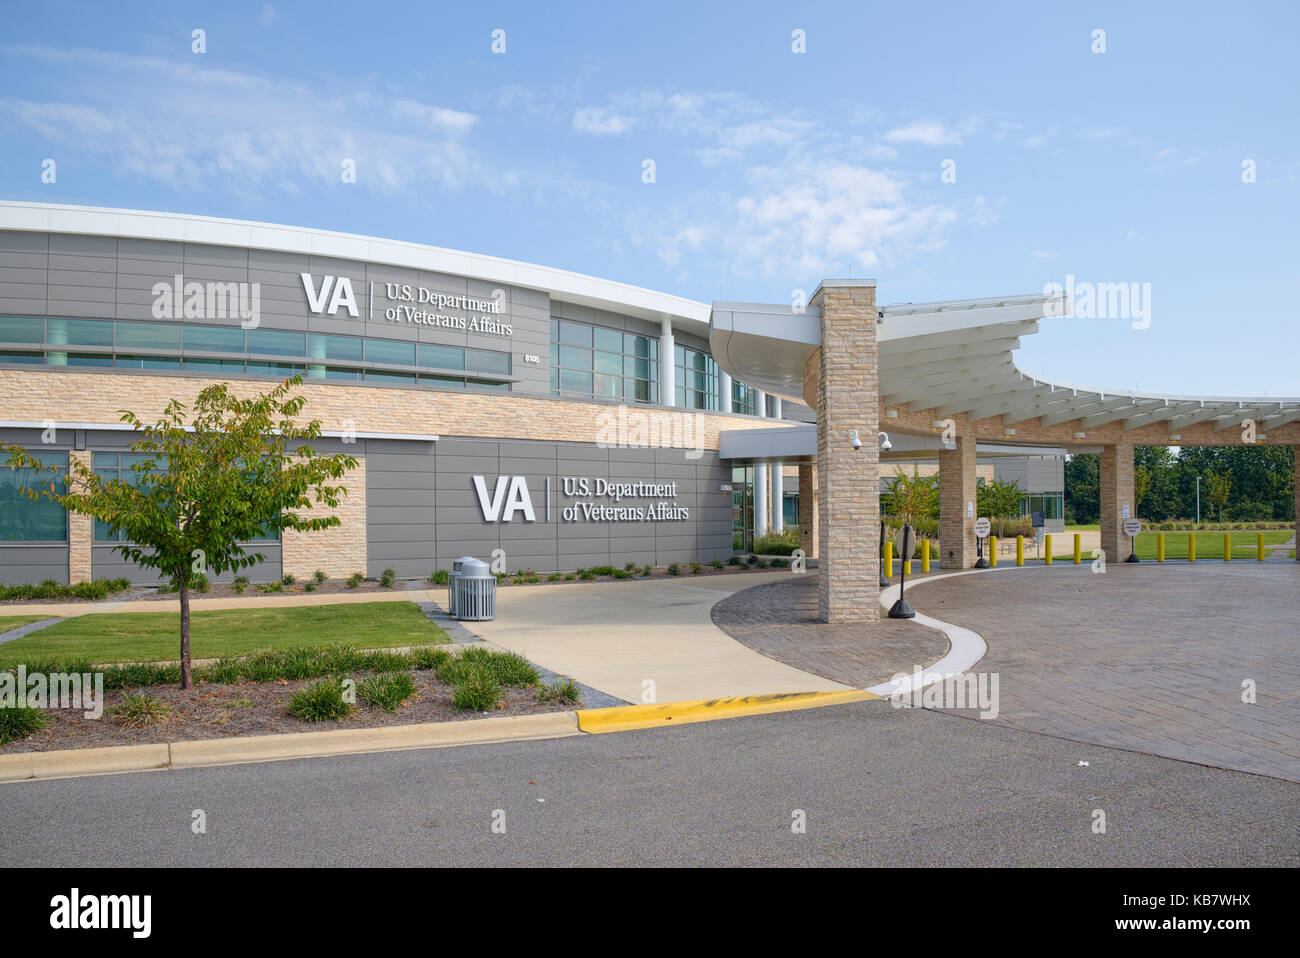 U.S. Department of Veterans Affairs, VA hospital, outpatient clinic in Montgomery, Alabama, United States. Stock Photo